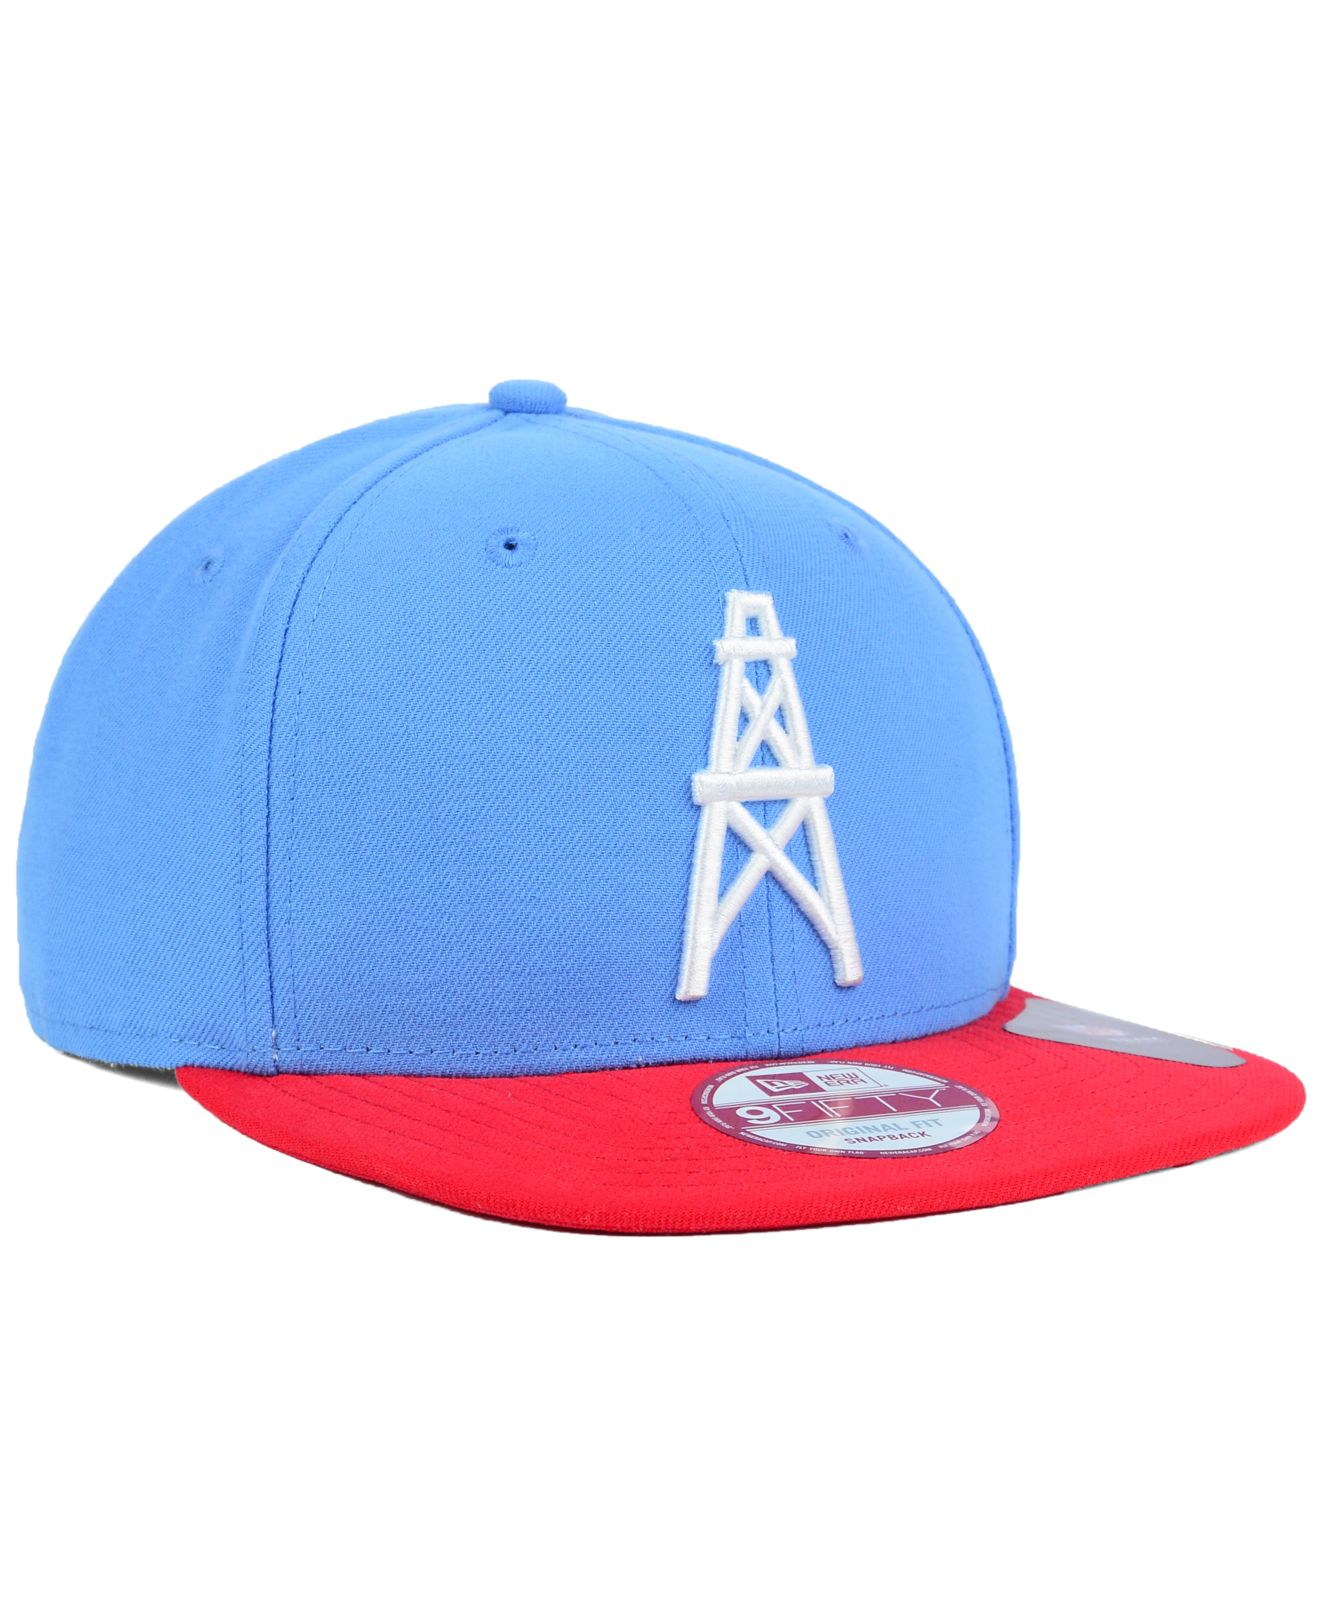 f0d40db051d Lyst - Ktz Houston Oilers Basic 9fifty Snapback Cap in Red for Men